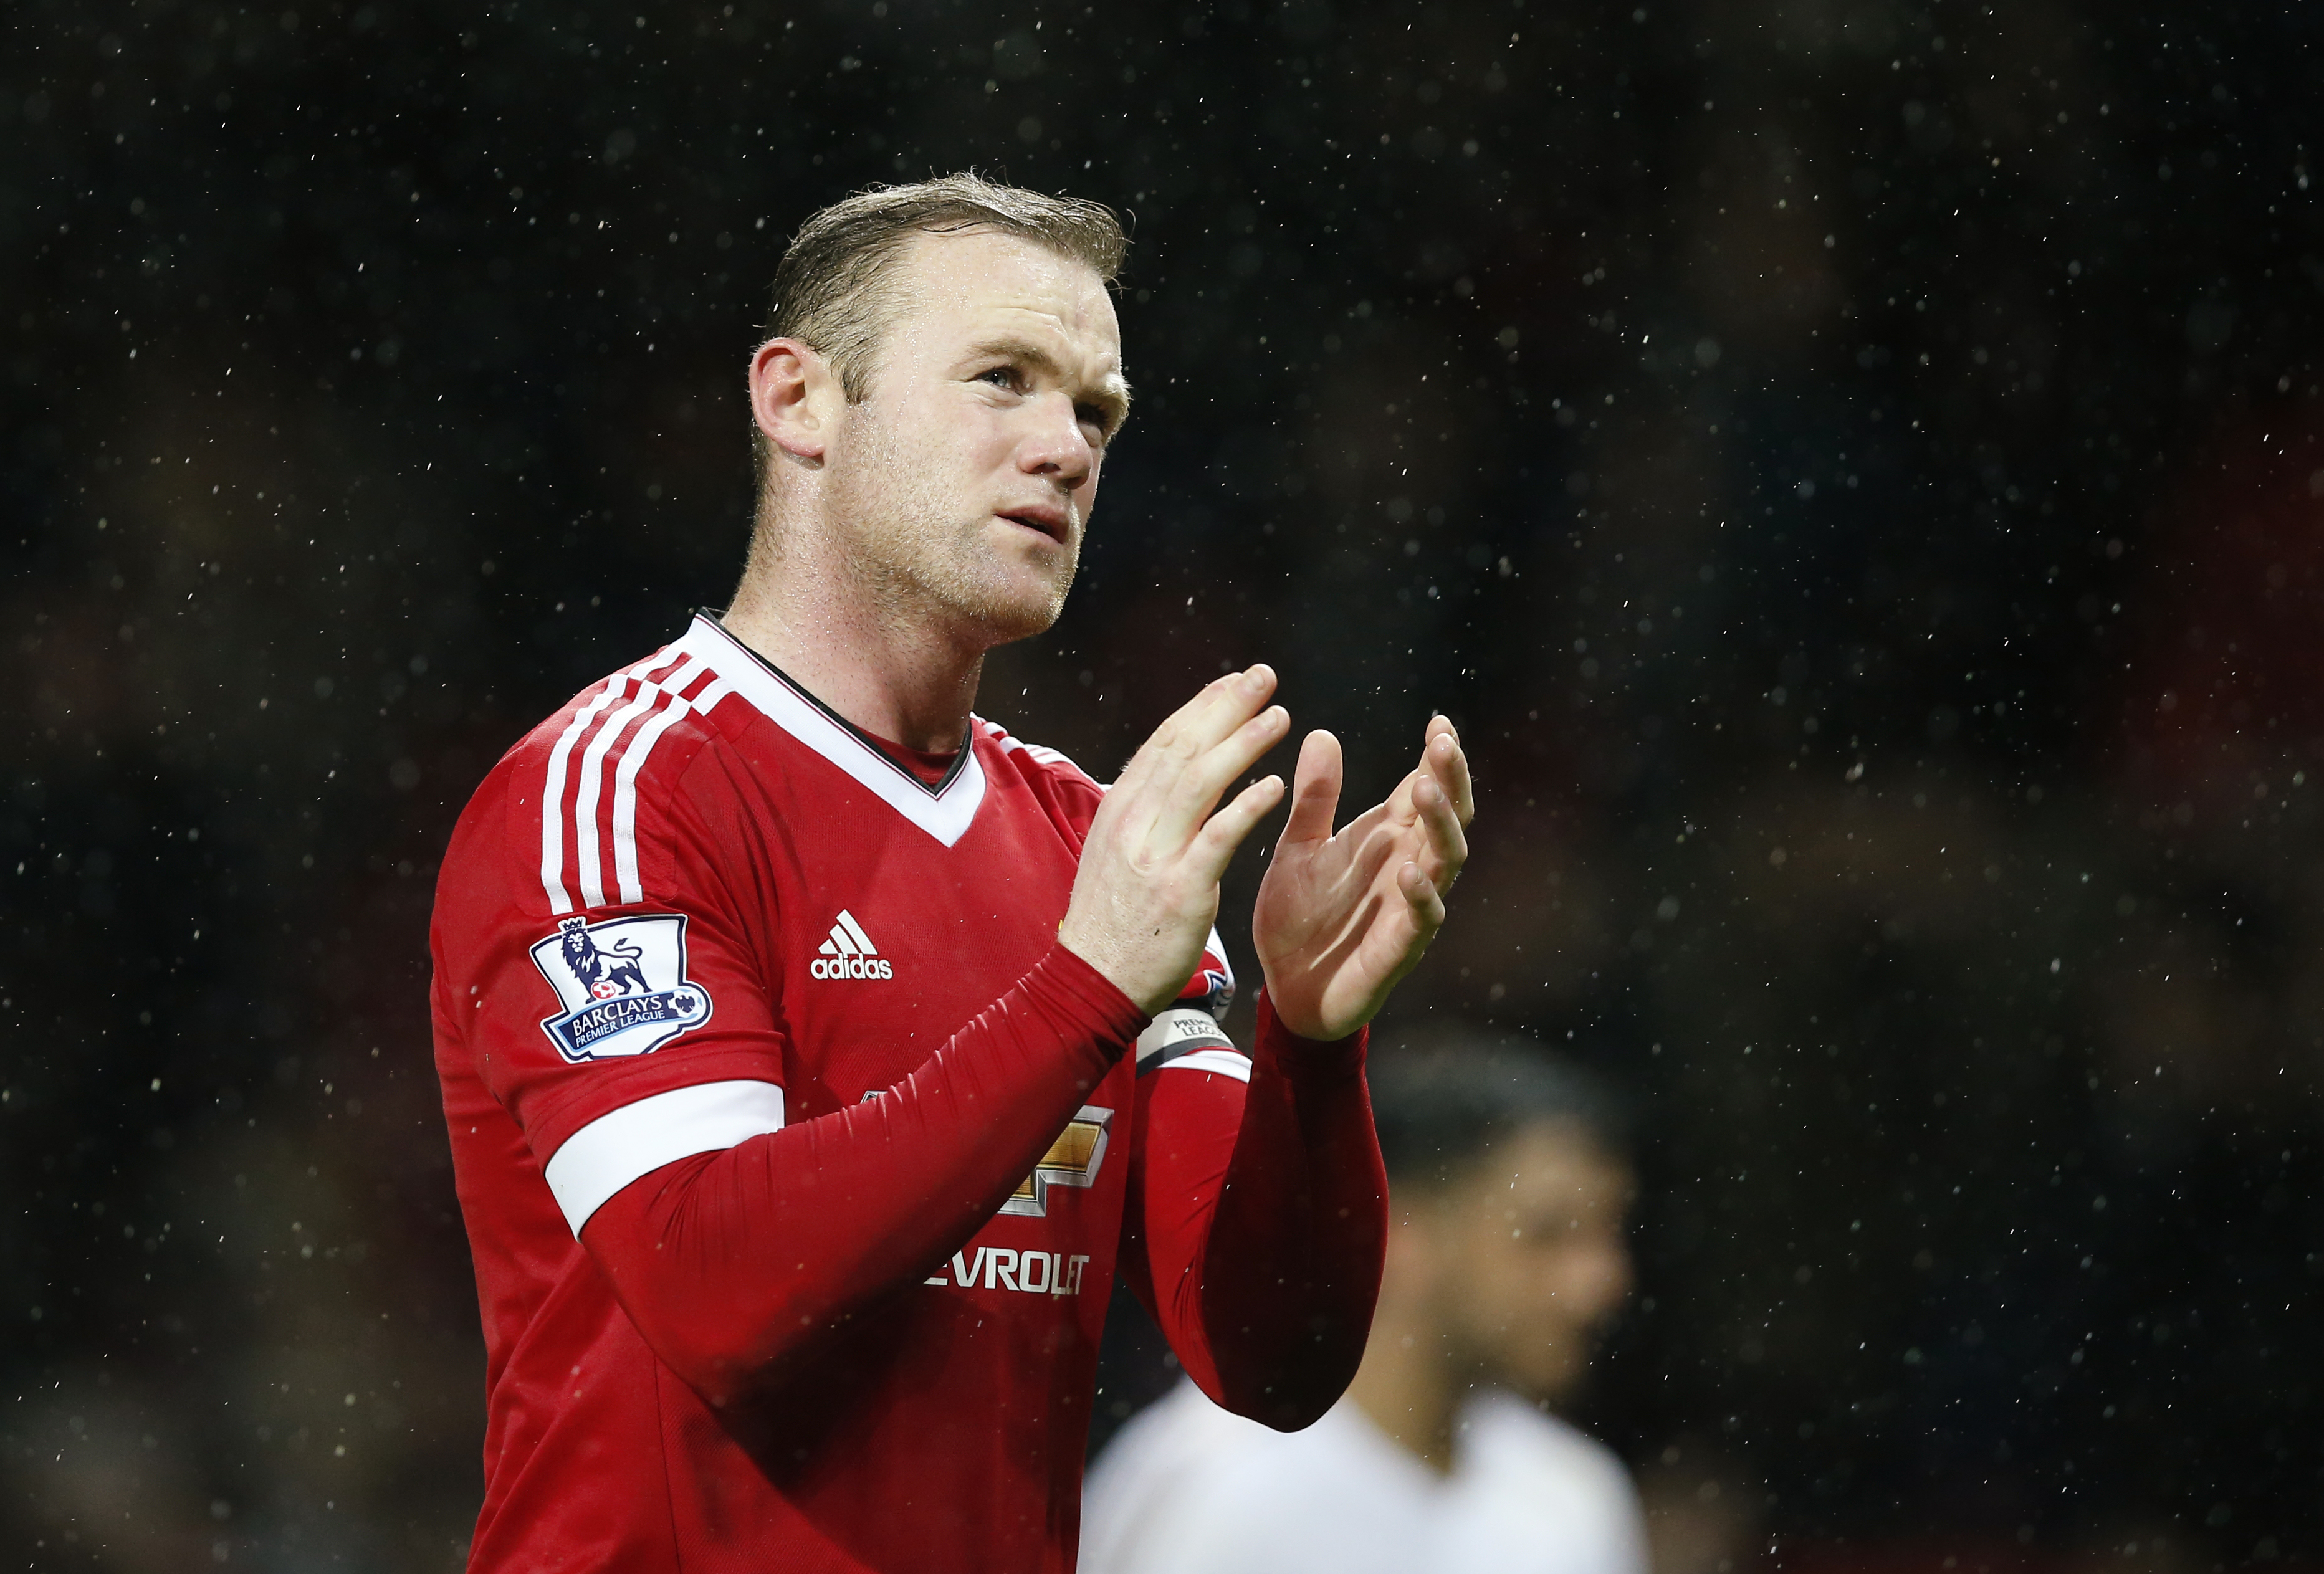 Manchester United's Wayne Rooney applauds the fans at the end of the match against Swansea City at Old Trafford on Saturday, January 2, 2016. Photo: Reuters